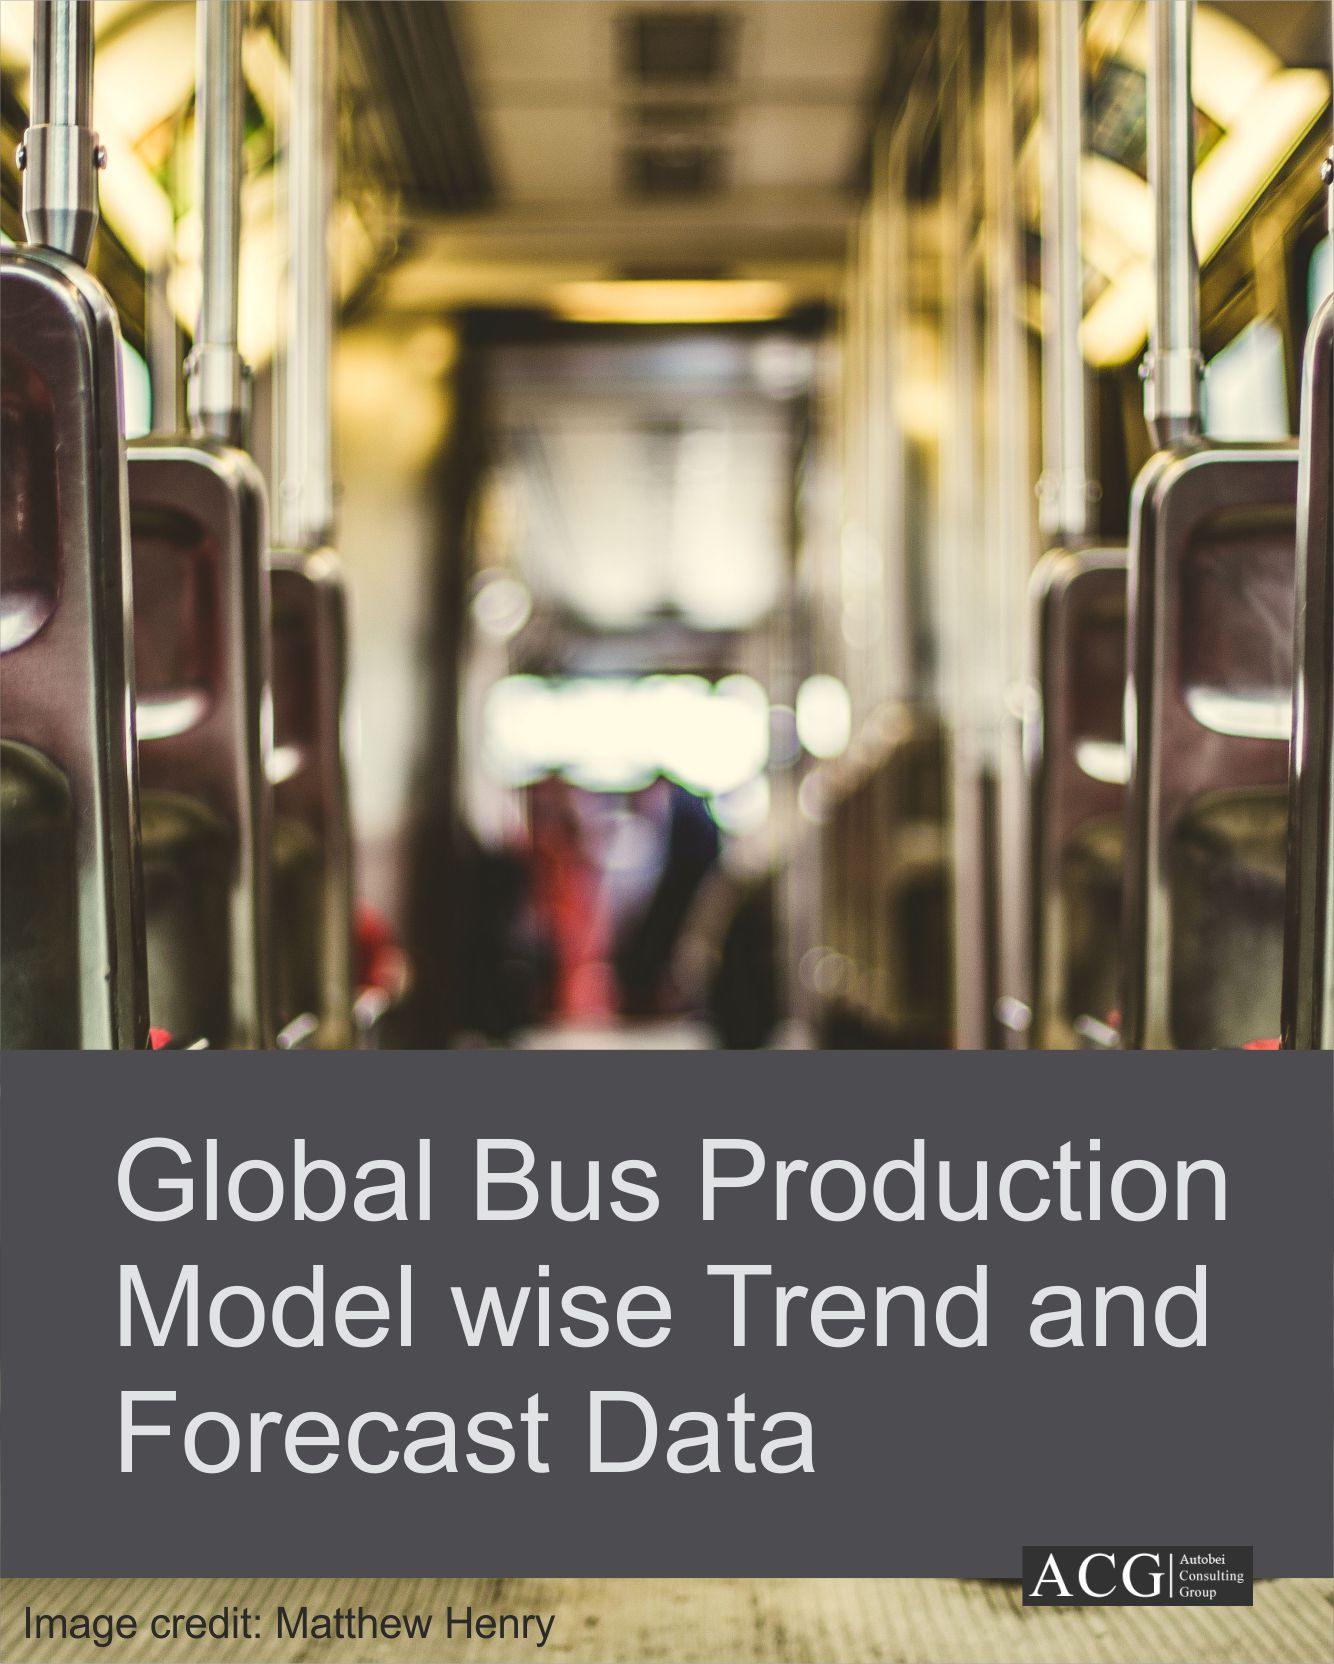 Global Bus Production Model wise Trend and Forecast Data